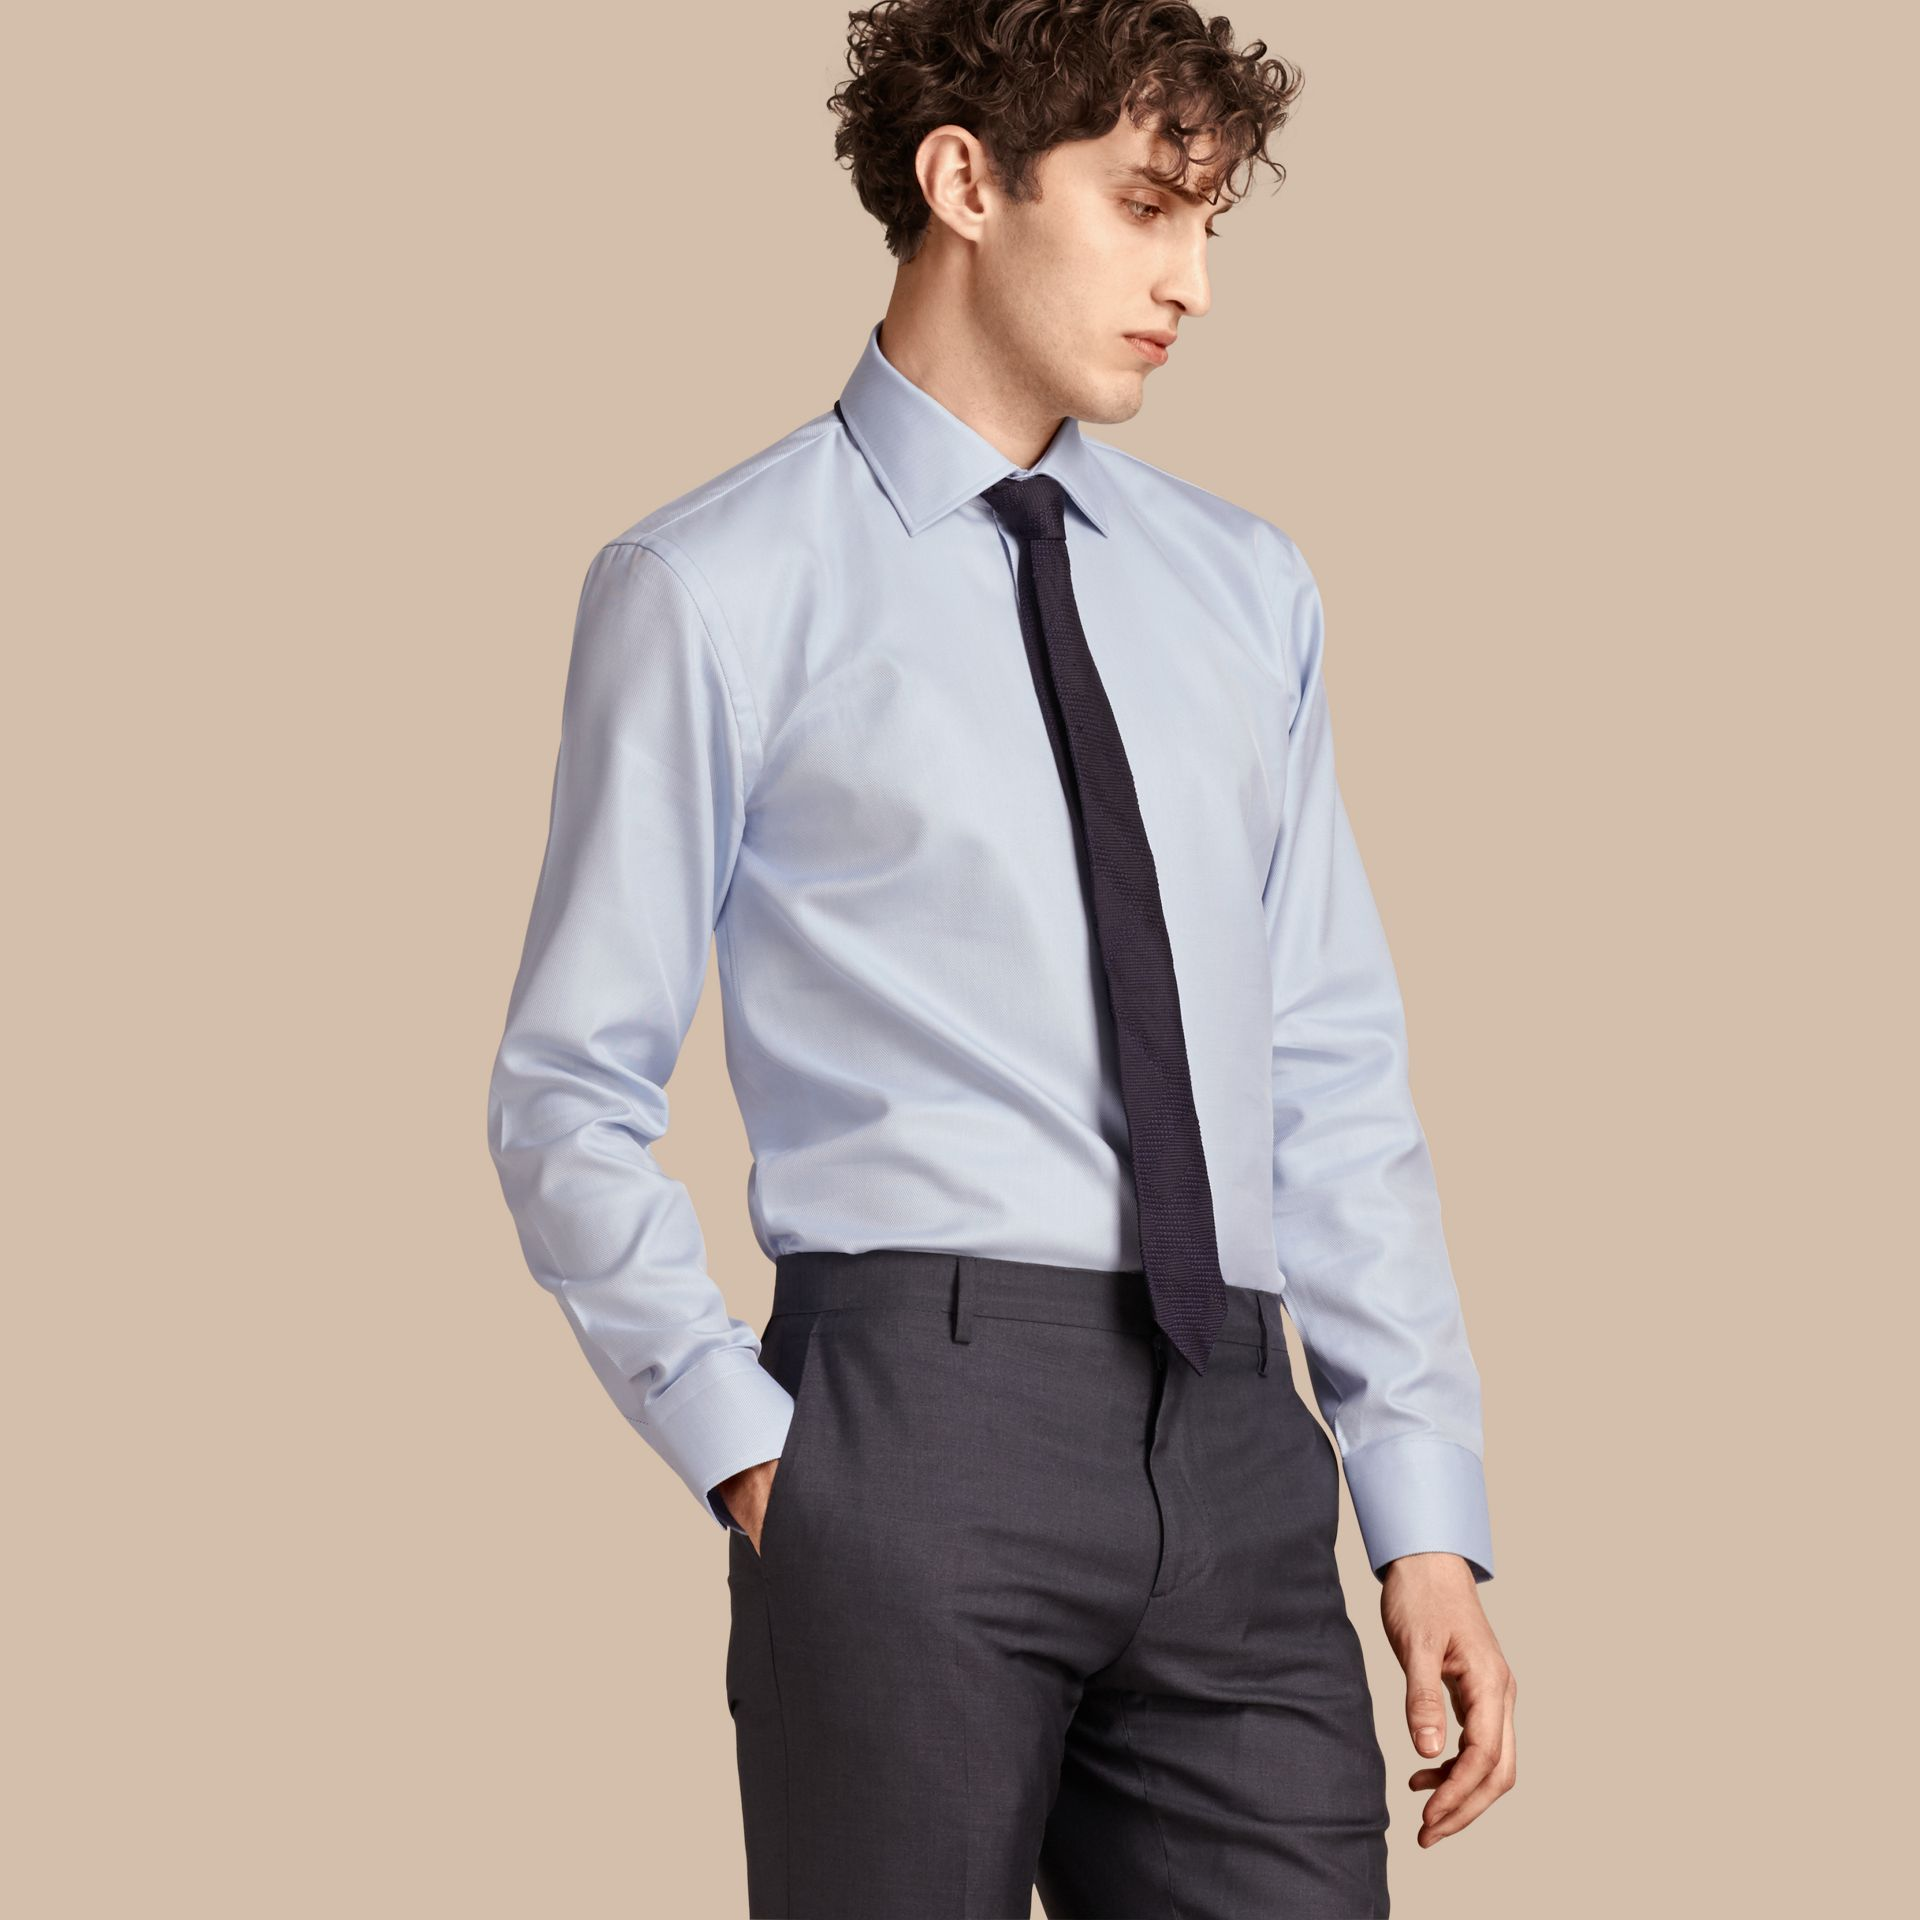 City blue Modern Fit Cotton Twill Shirt City Blue - gallery image 1